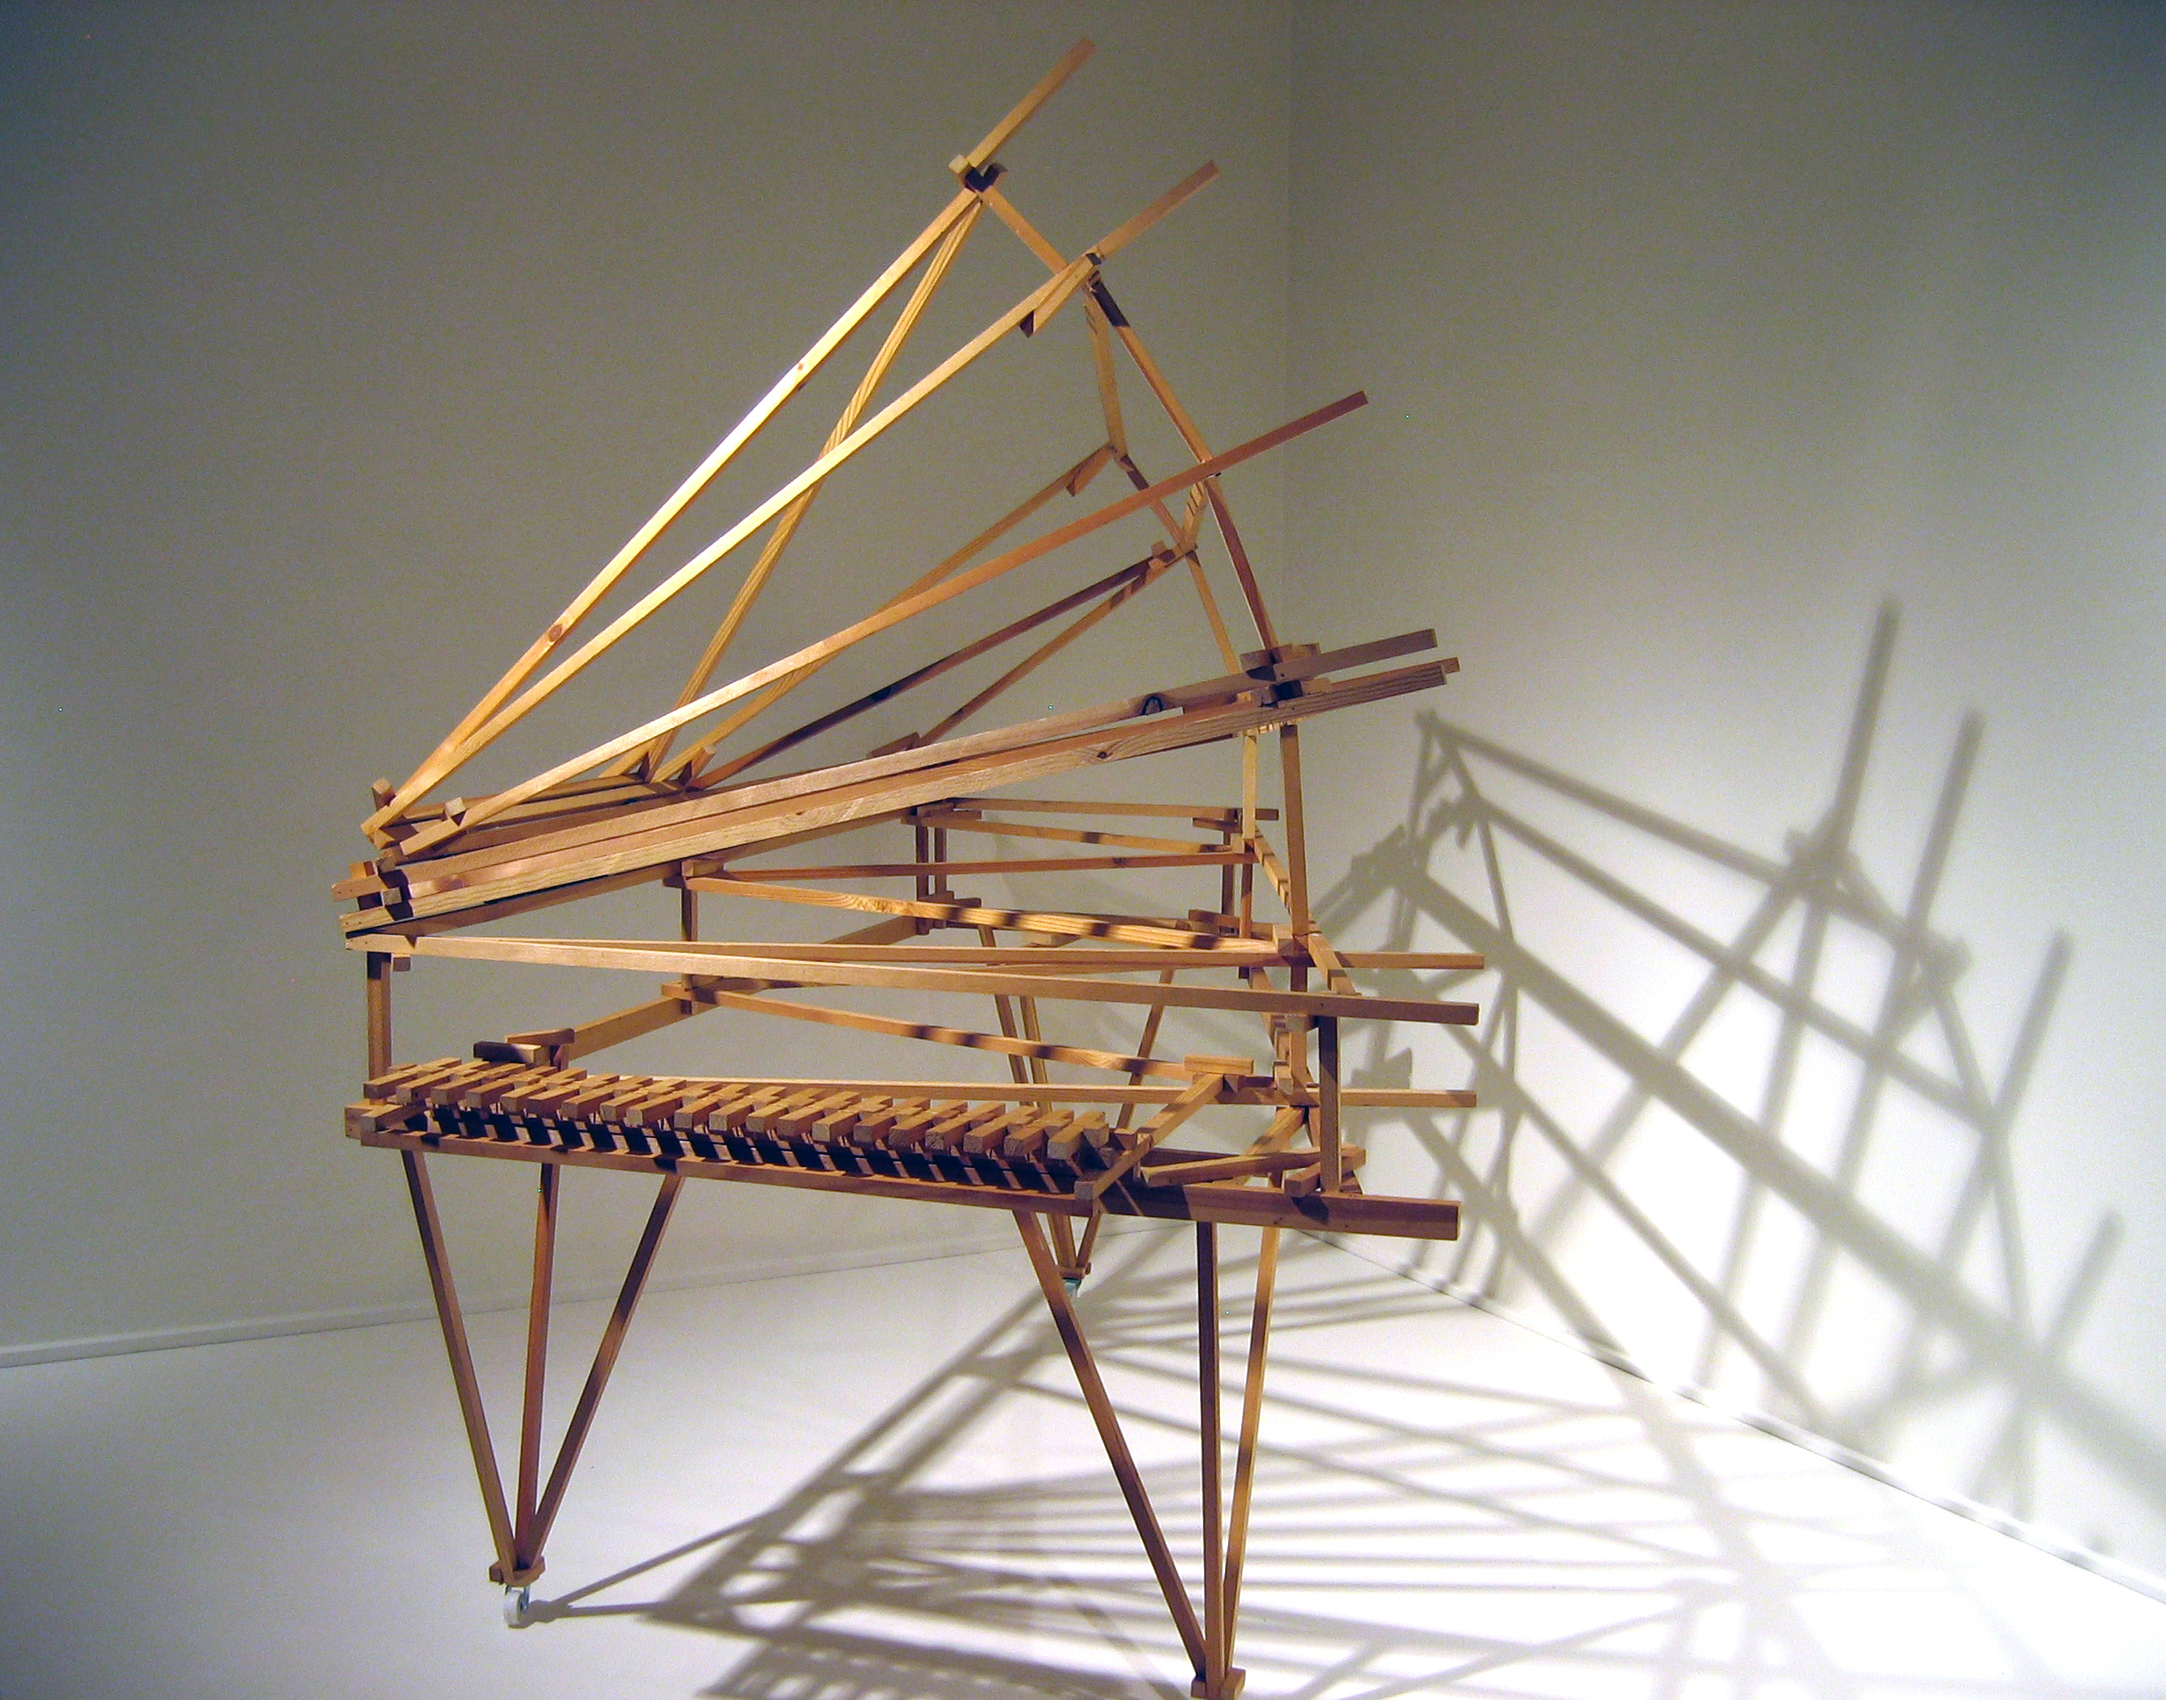 """'Zen Fan Grand' , 2006, 68 x 48 x 76(with top open). To create the simplest possible """"piano"""" structure (with fanned top and removable legs), I cut wood strips into 2"""", 4"""". 6"""", 8"""", 1', 18"""", 2', and 1/2 ft. increments up to 6' lengths. They were arranged in the most obvious manner to provide rigidity, with no additional cutting, using a hot-glue gun and brad stapler. The key configuration is the simplest method I could come up with using the pieces and rubber bands to make a playable (and removable) keyboard. The """"notes"""" are essentially the same """"clink"""", but have very subtle differences, especially when amplified. These sounds are the antithesis of a standard piano, and emphasize the percussive aspect of the instrument."""